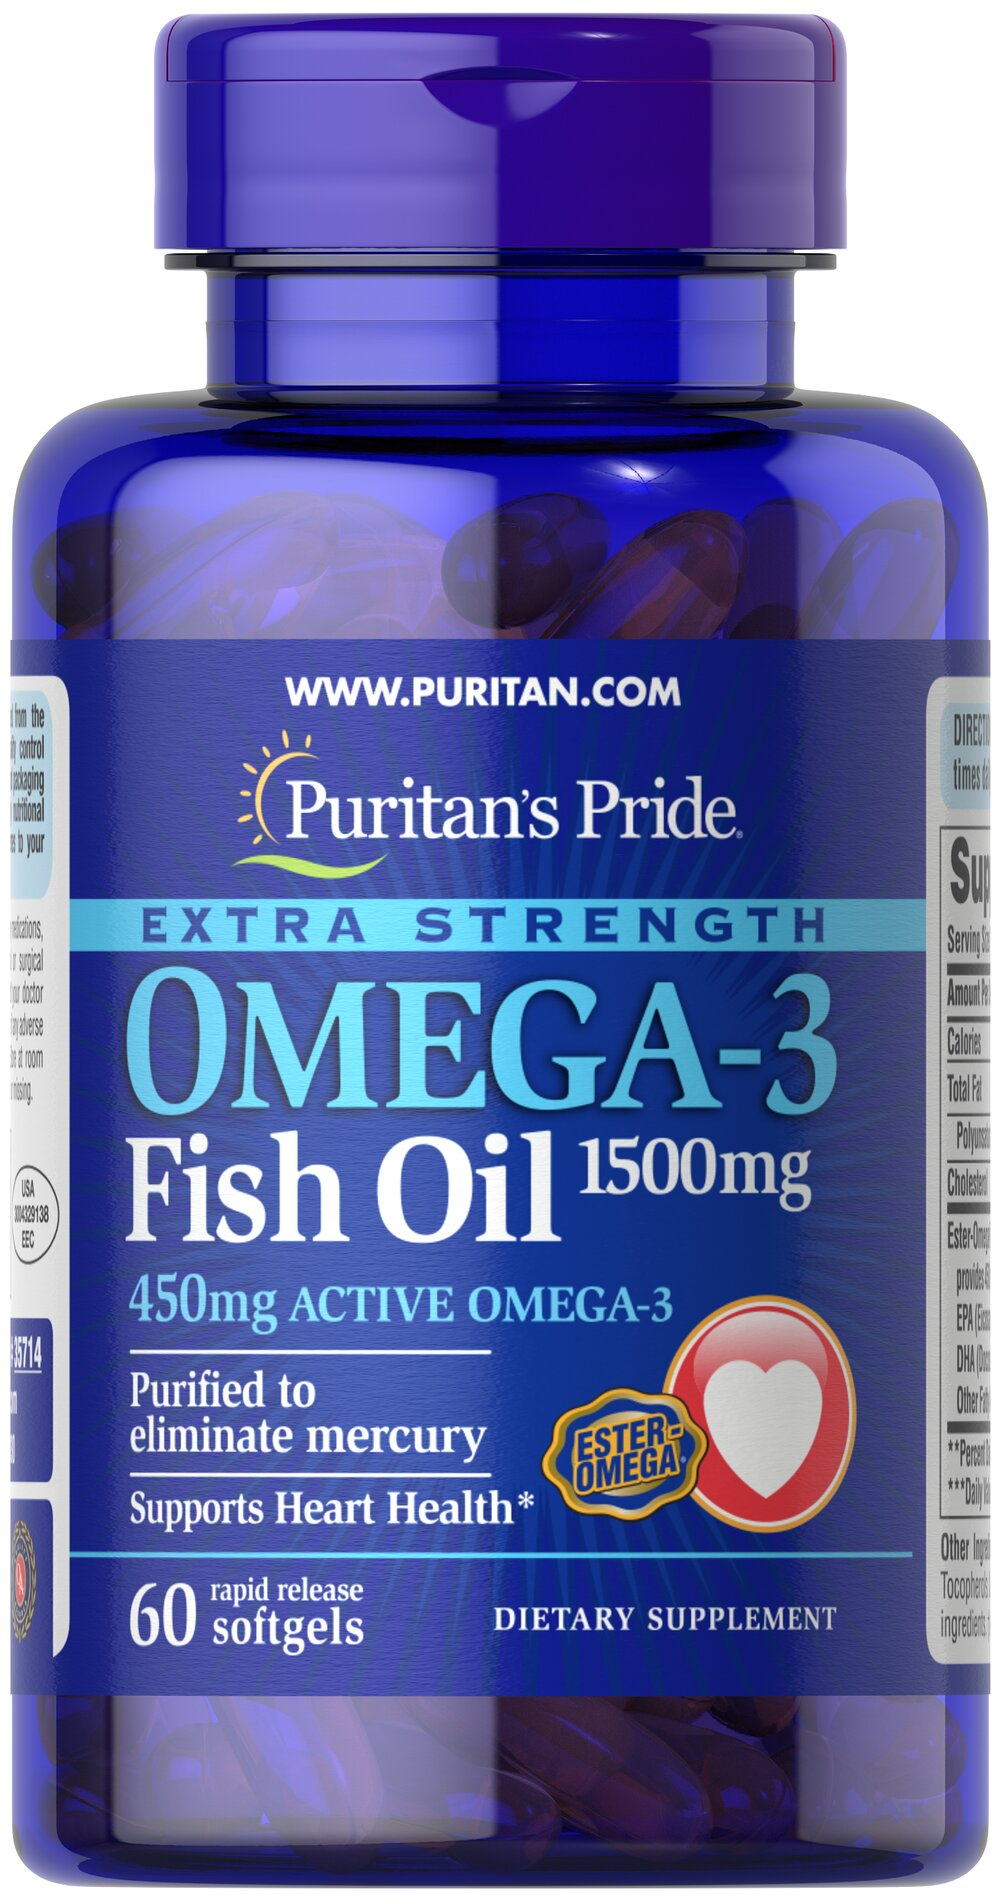 Extra strength omega 3 fish oil 1500 mg 450 mg for Omega 3 fish oil costco